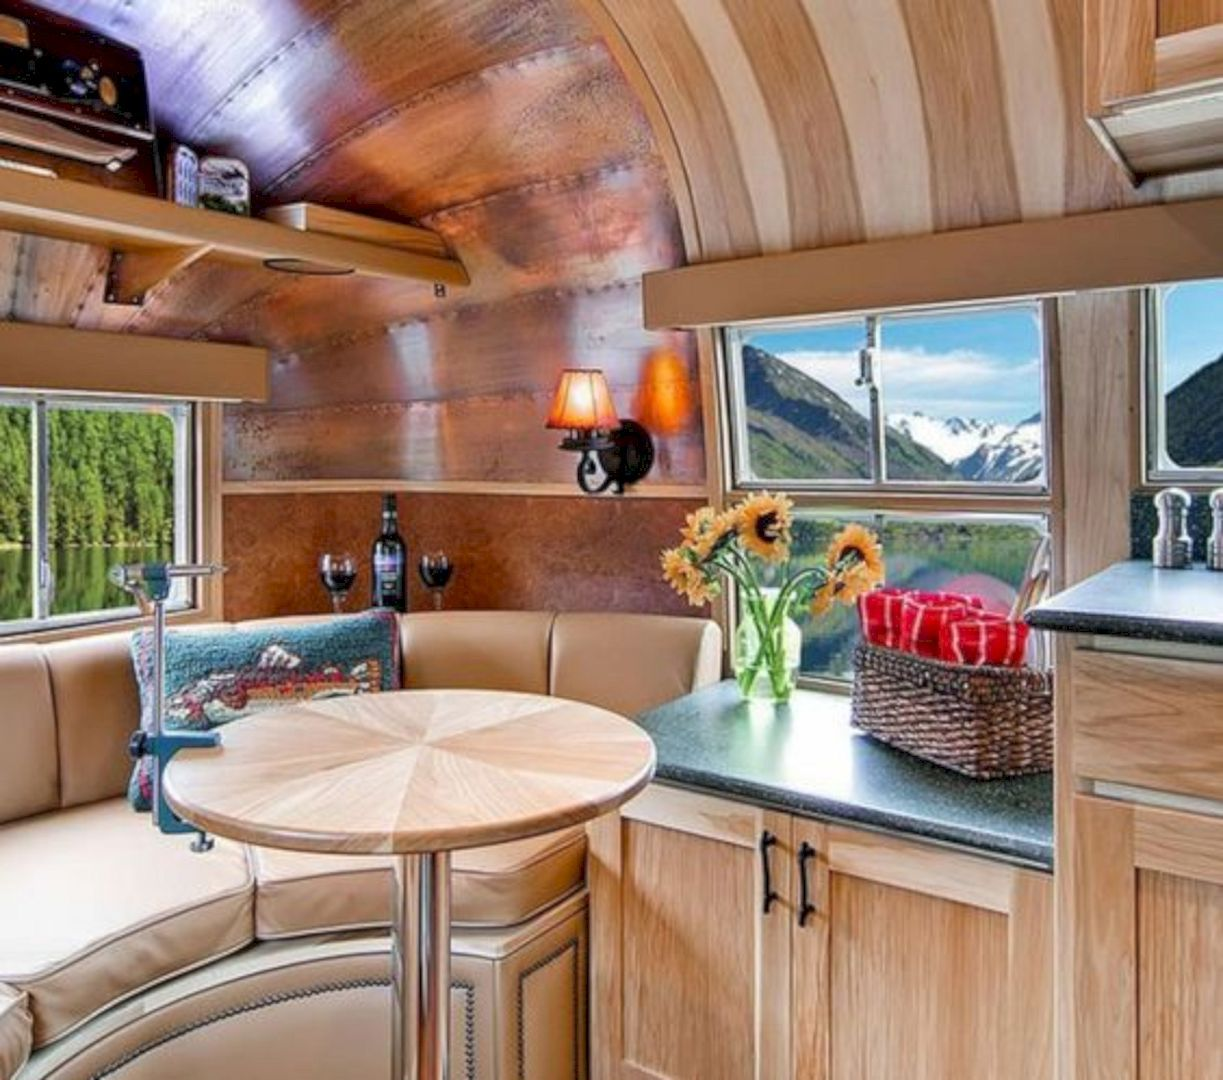 15 Campervan Interior Design Ideas For A Cozy Camping Time Https://www.